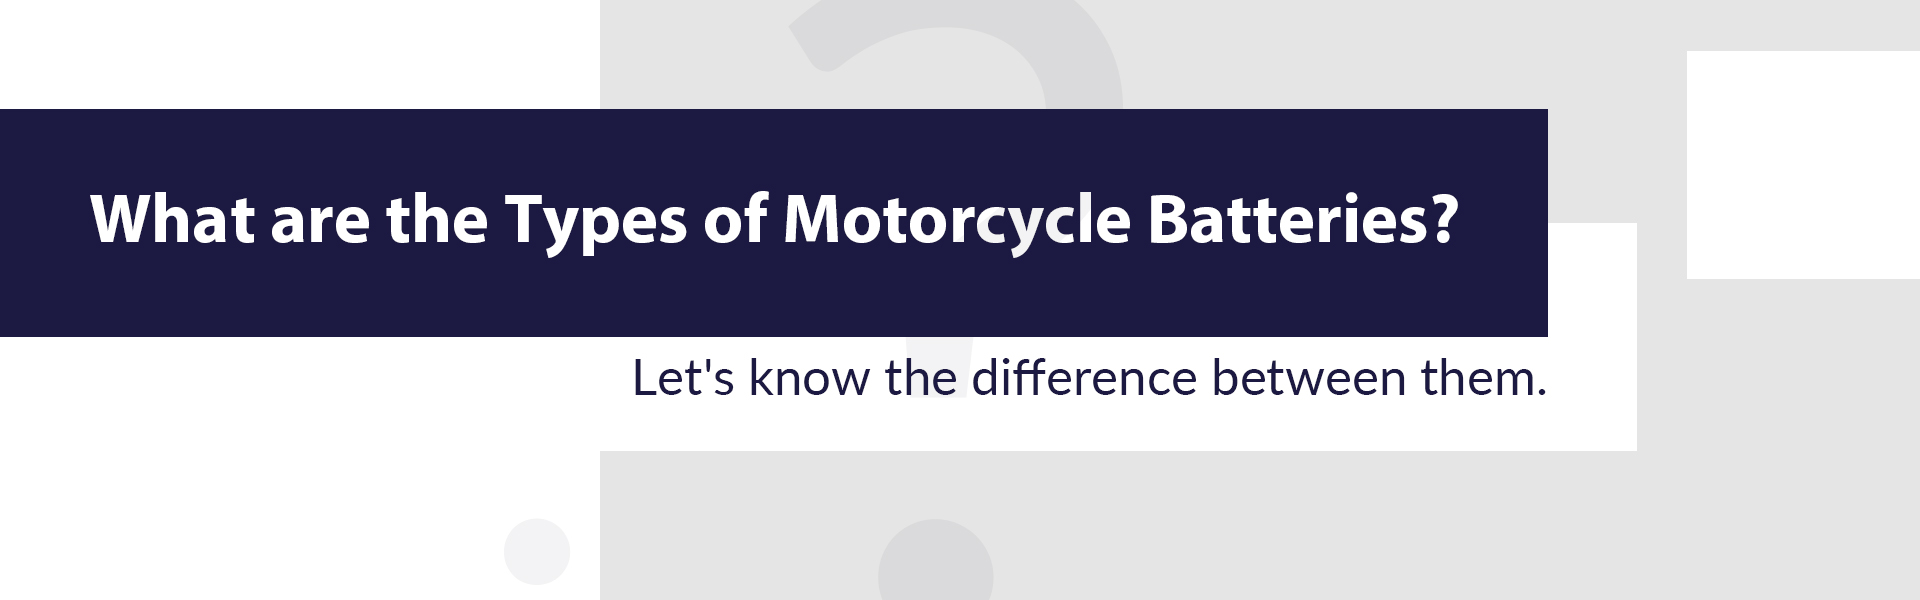 what are the types of motorcycle batteries